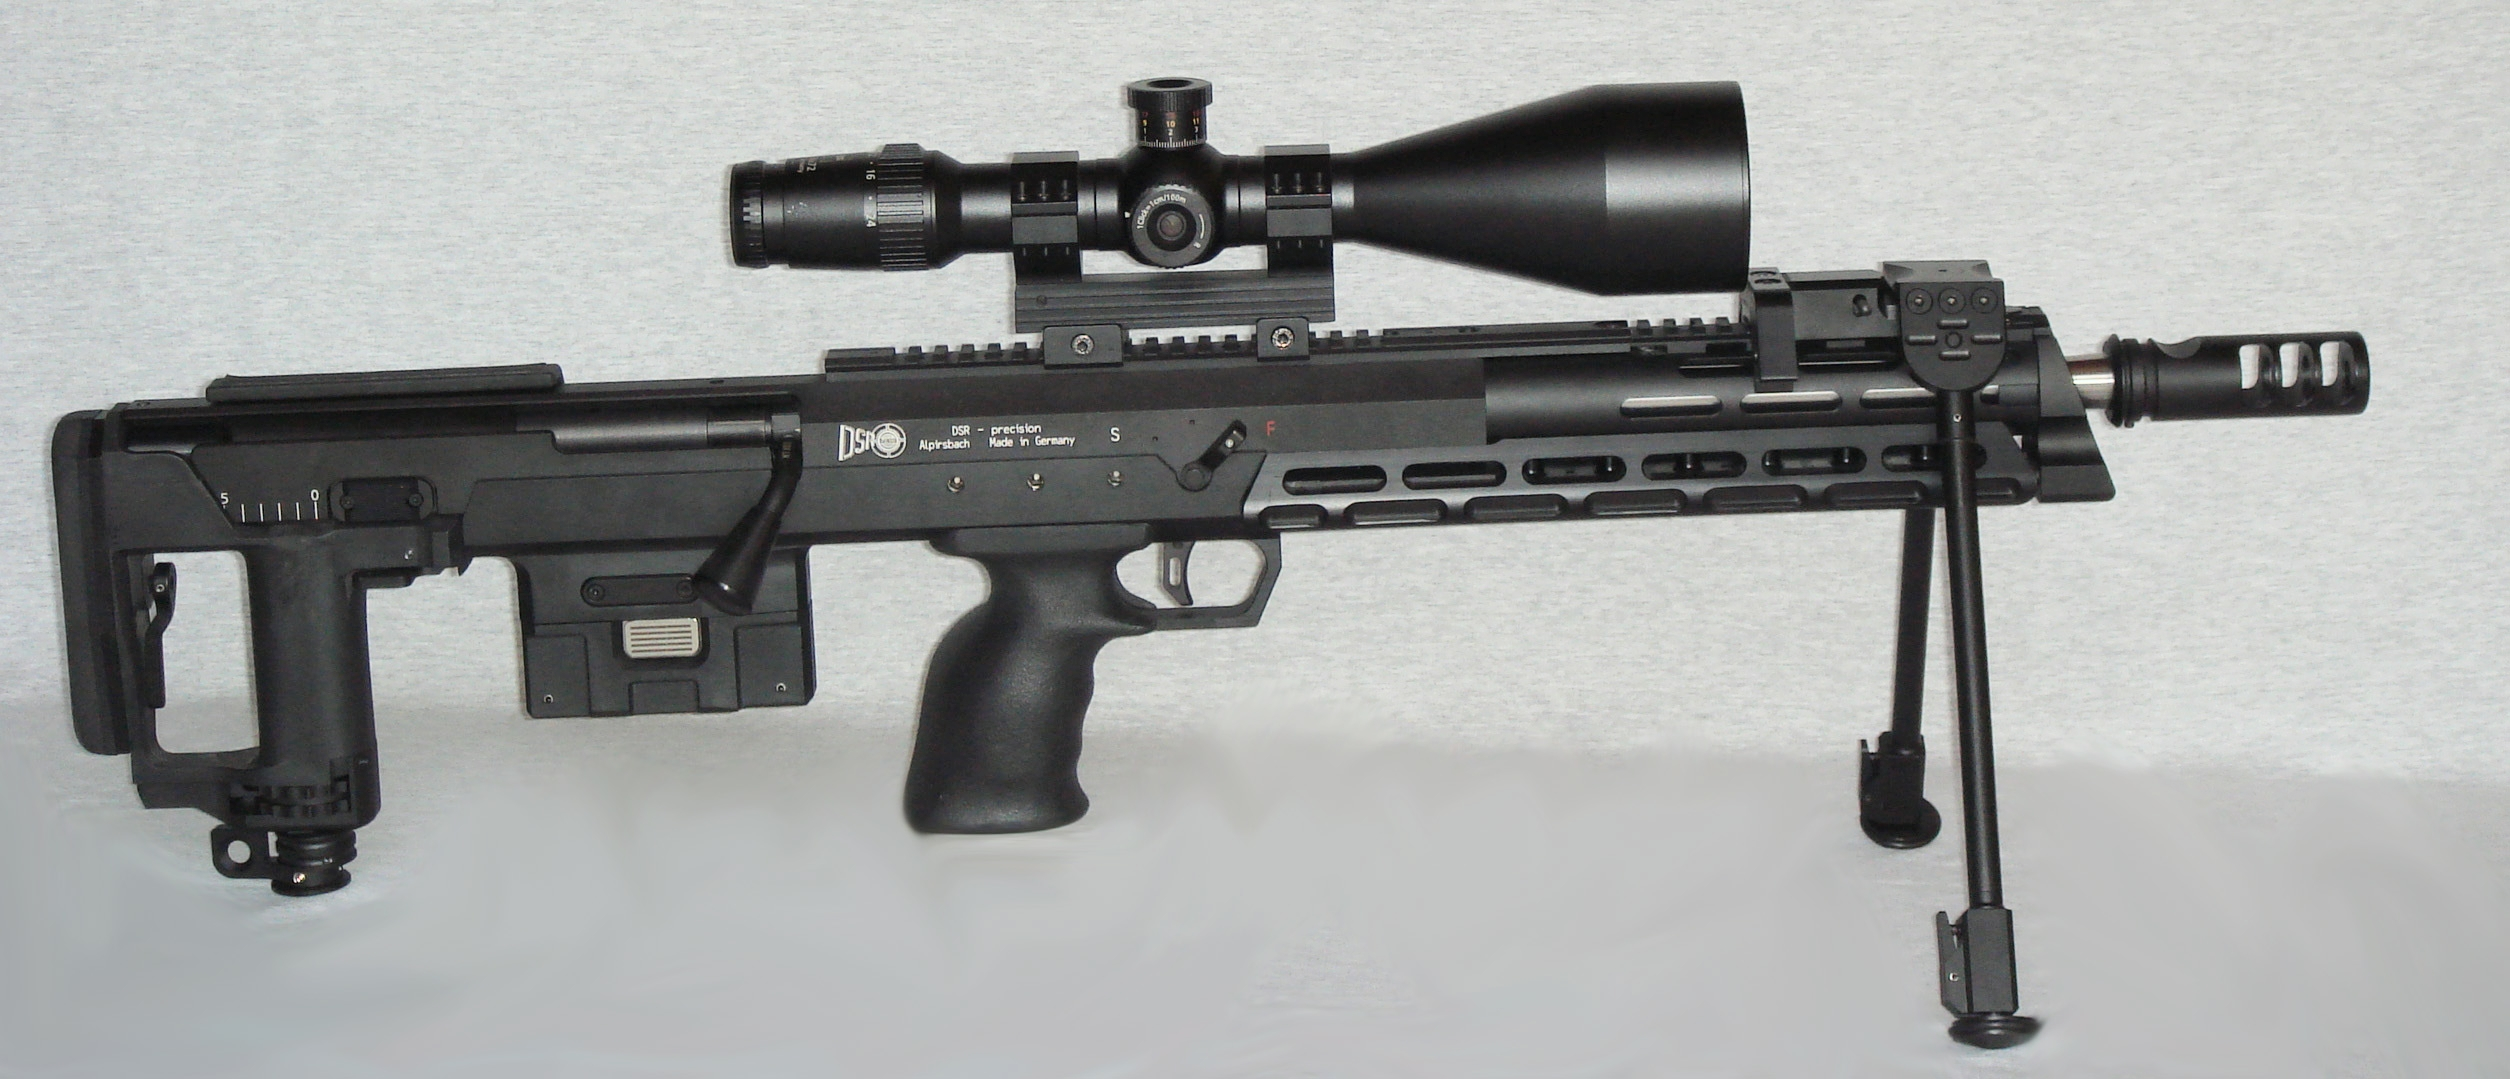 Dsr 3 sporter not yet available